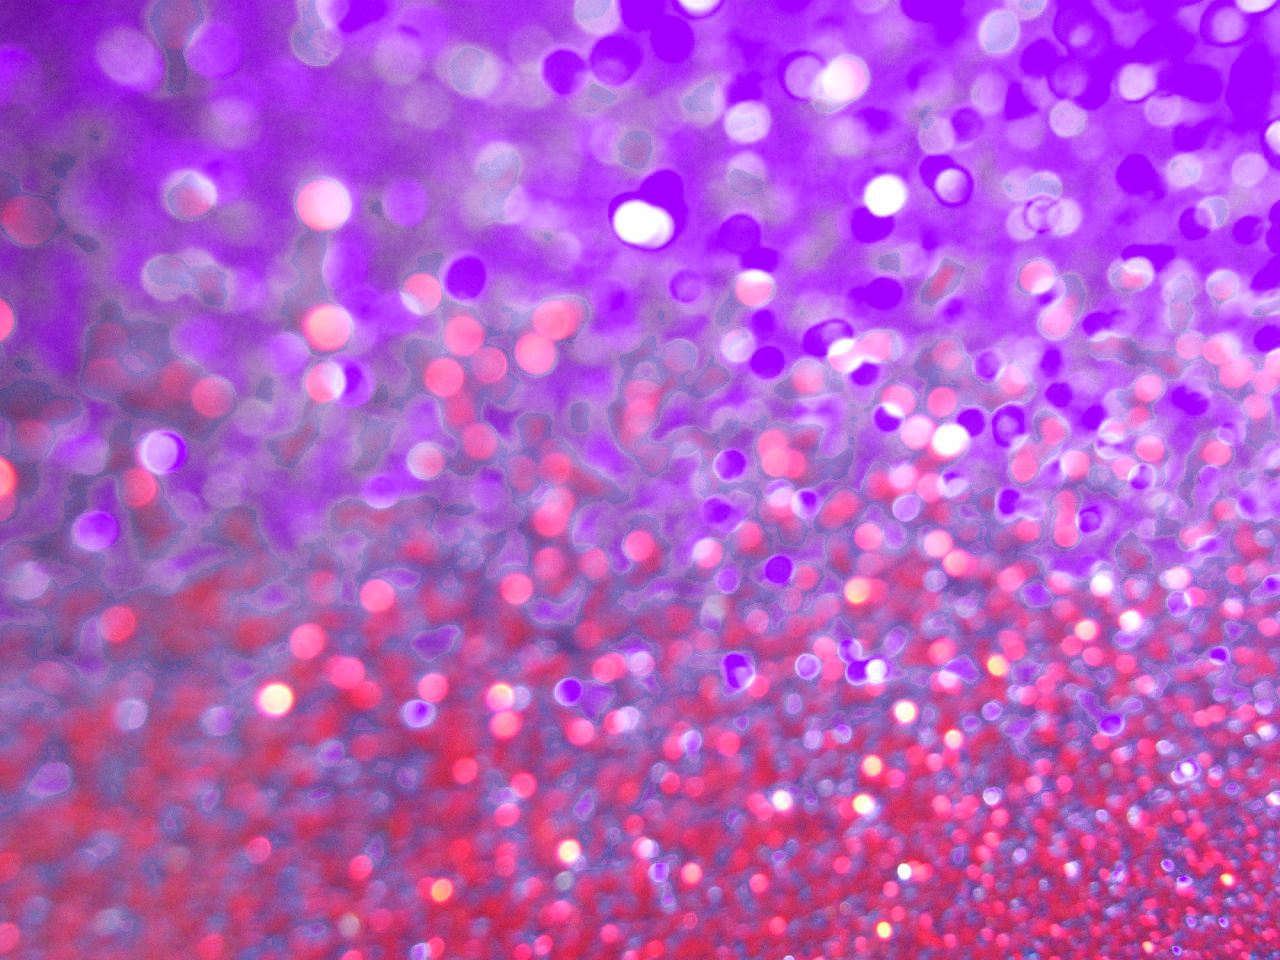 49 pink glitter wallpaper on wallpapersafari - Purple glitter wallpaper hd ...